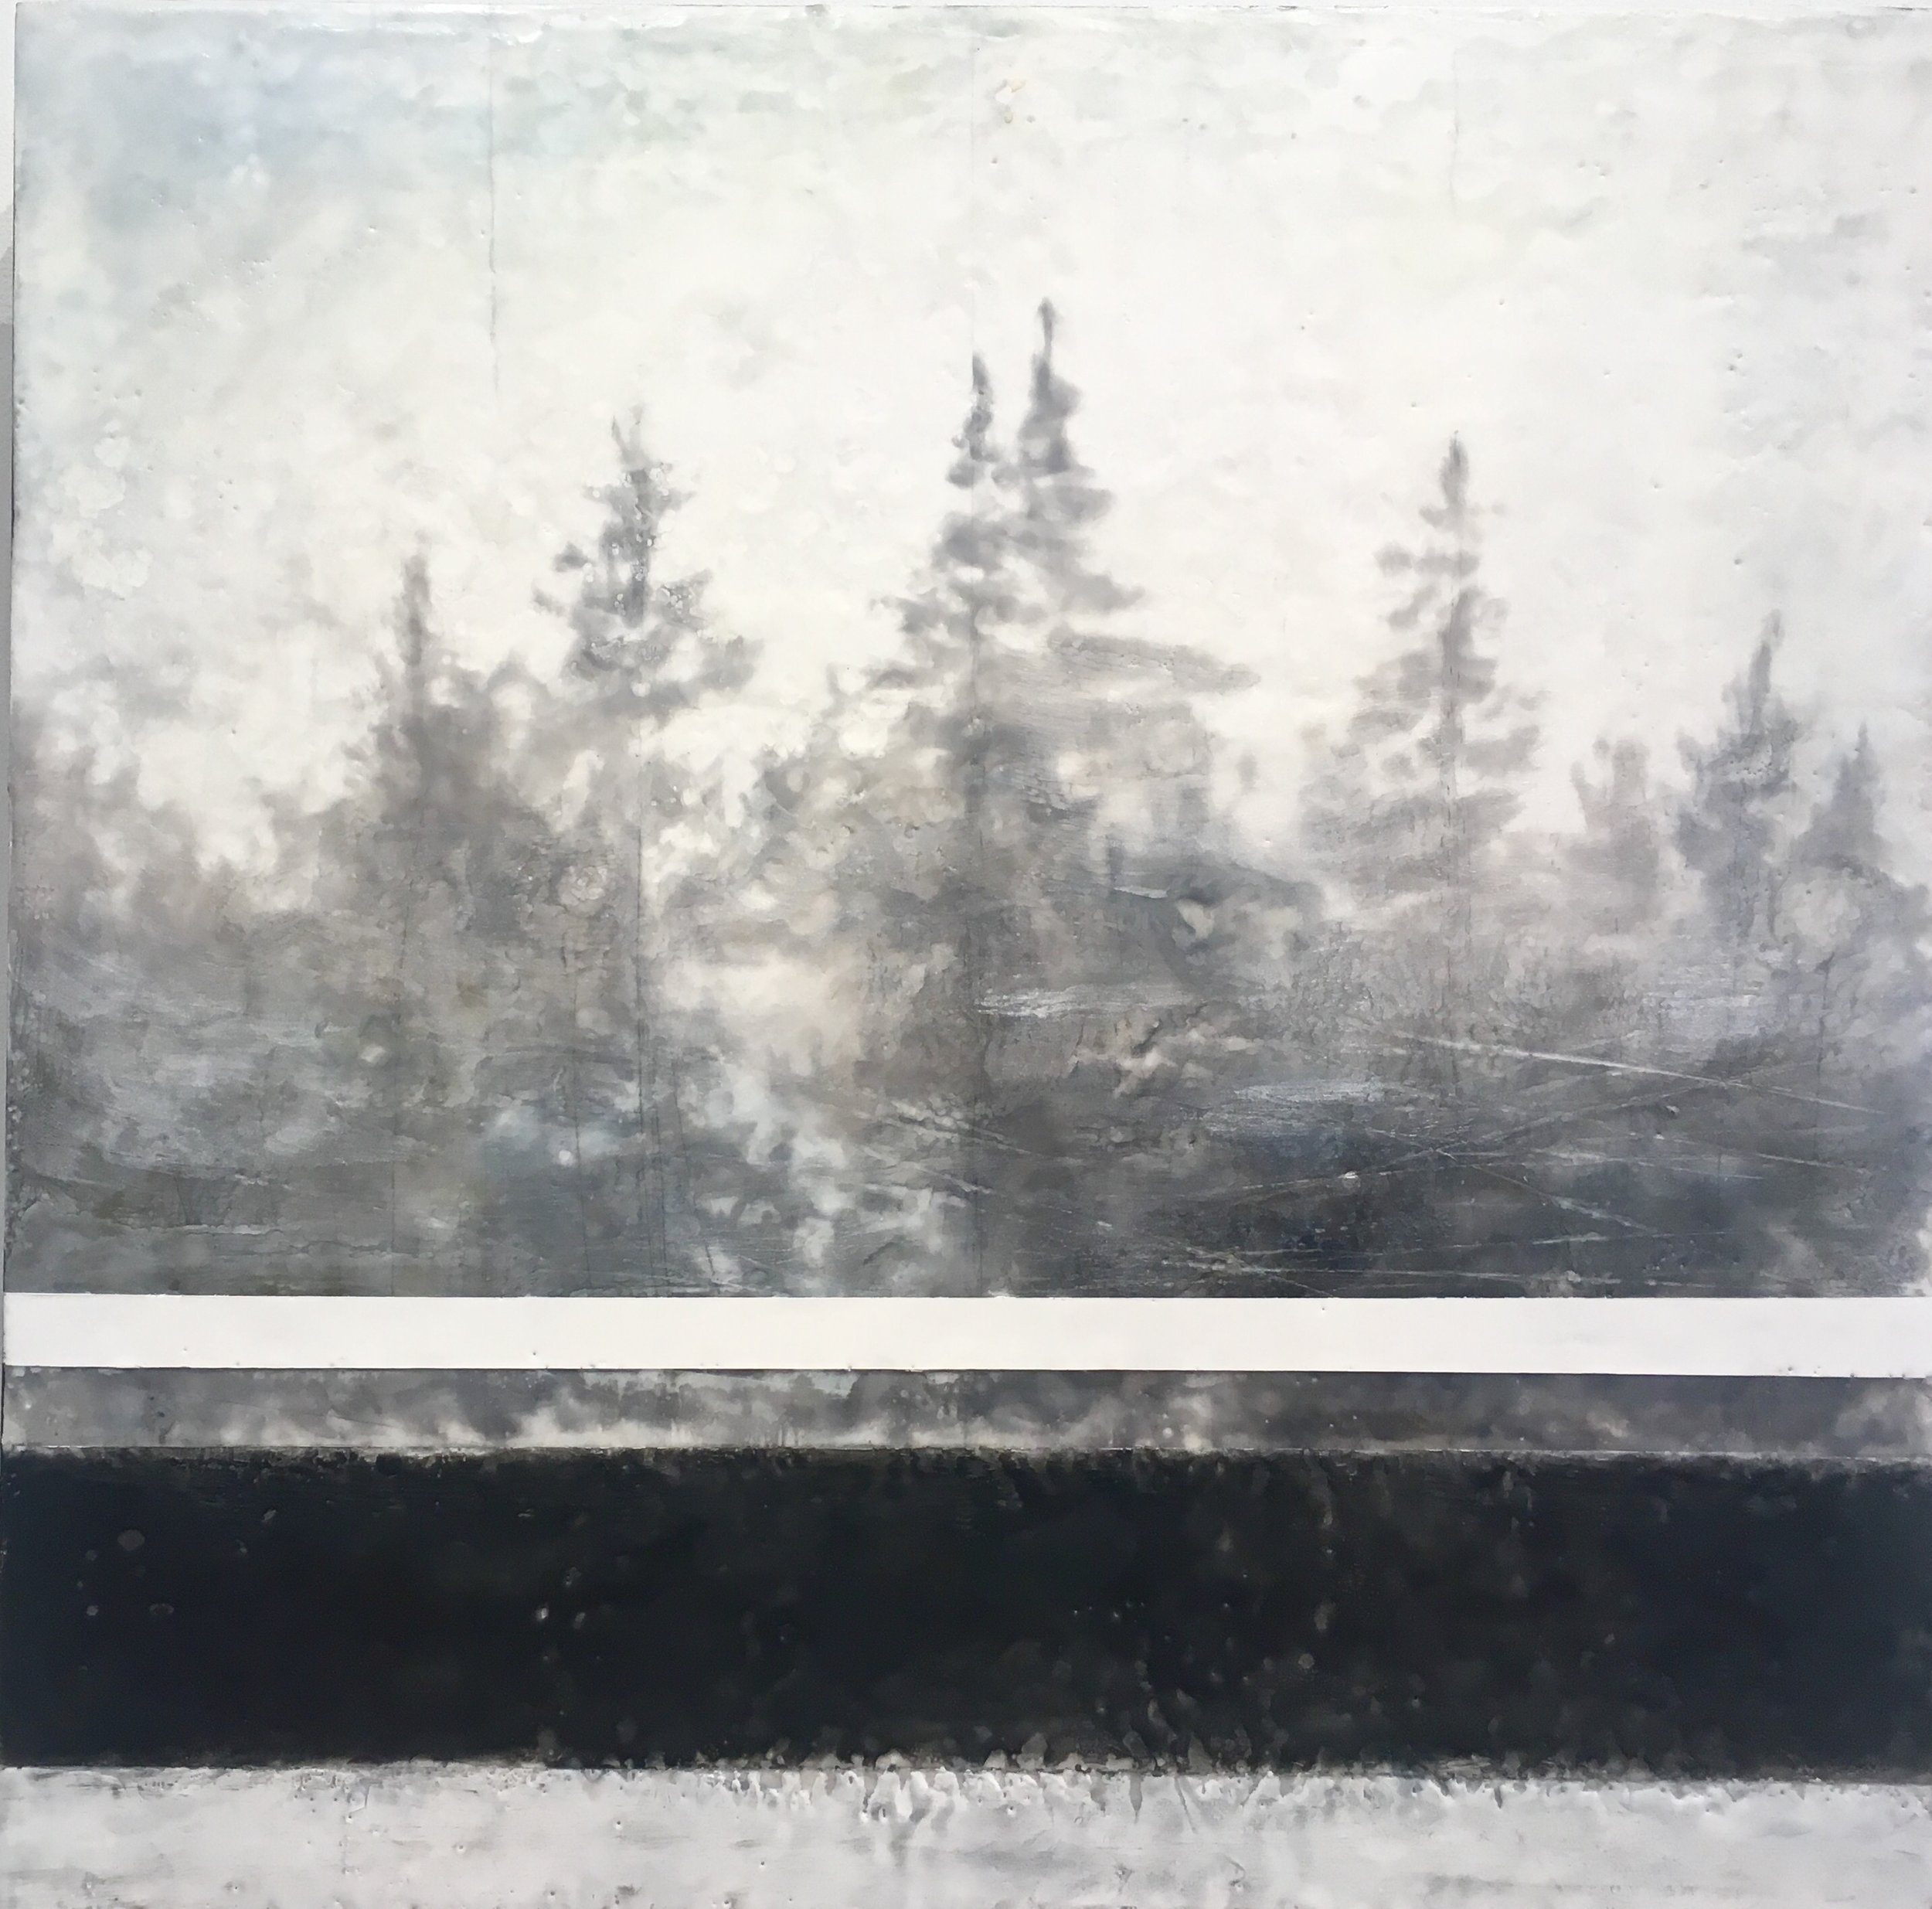 Forest For the Trees.24x24%22. encaustic.jpg